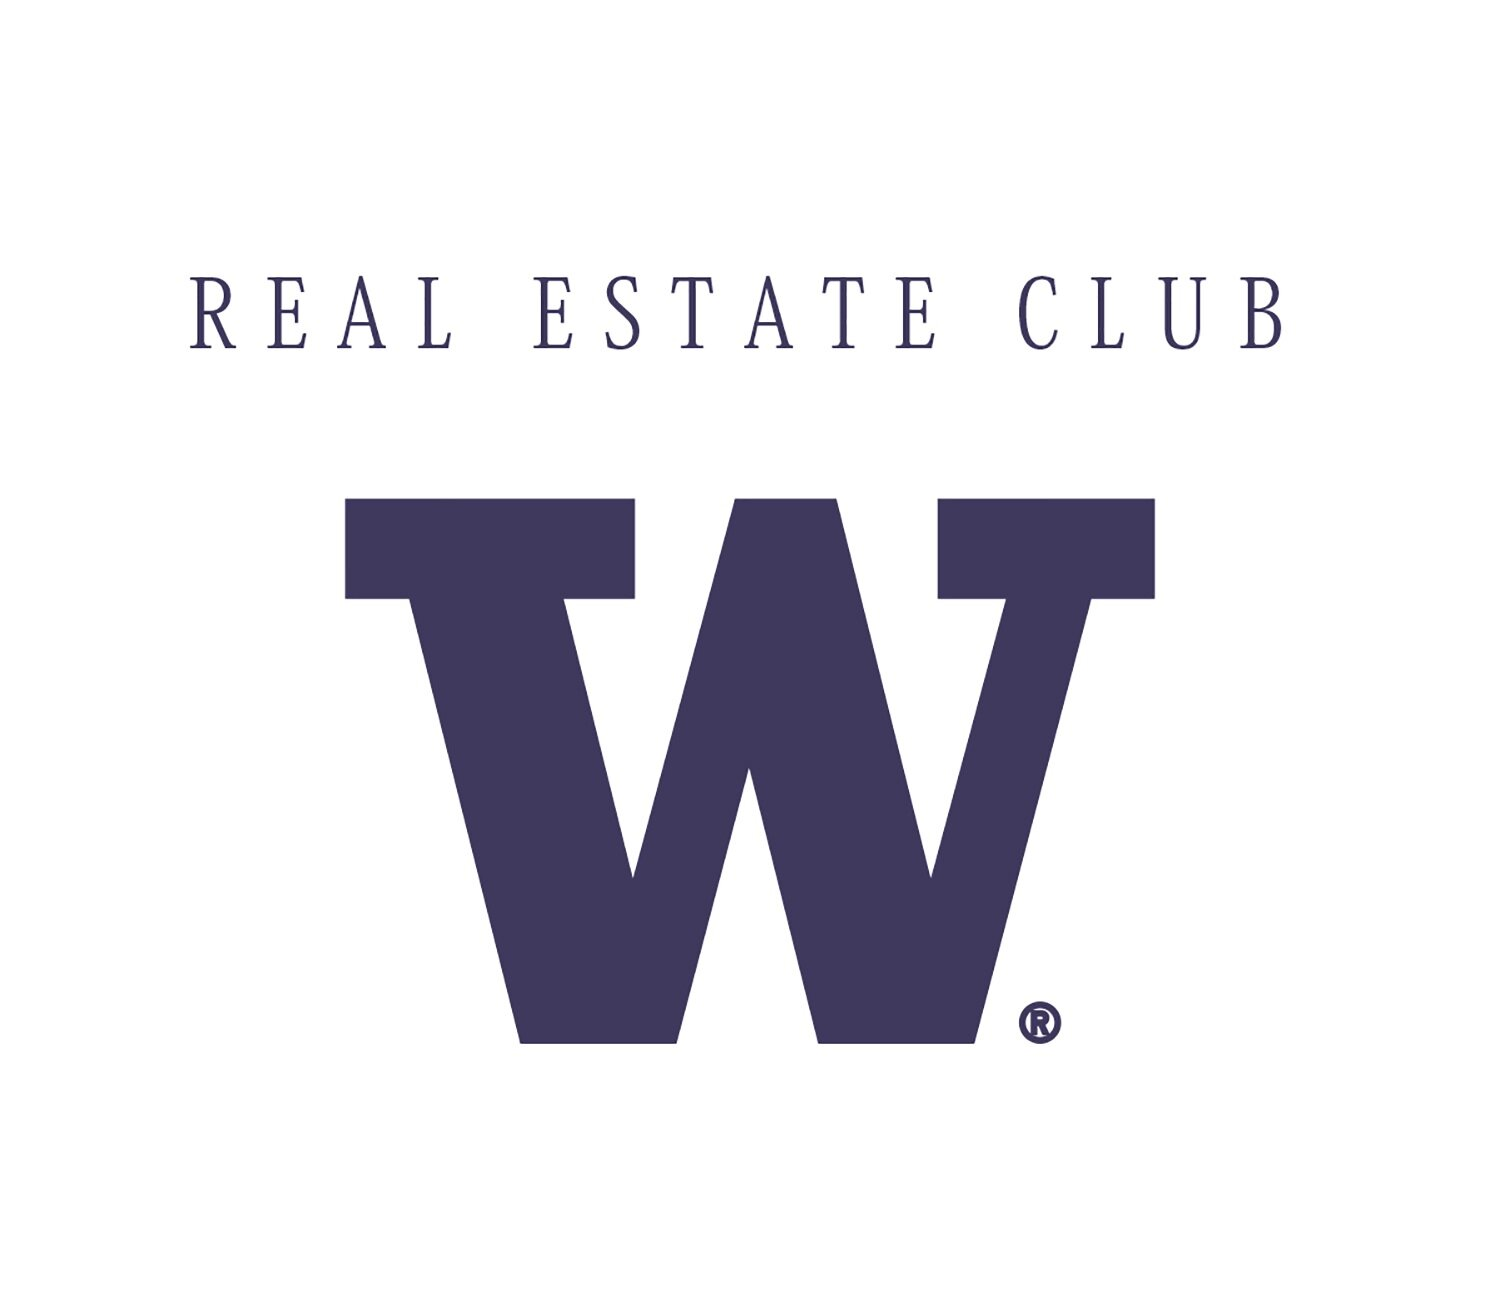 Real Estate Club at the University of Washinton